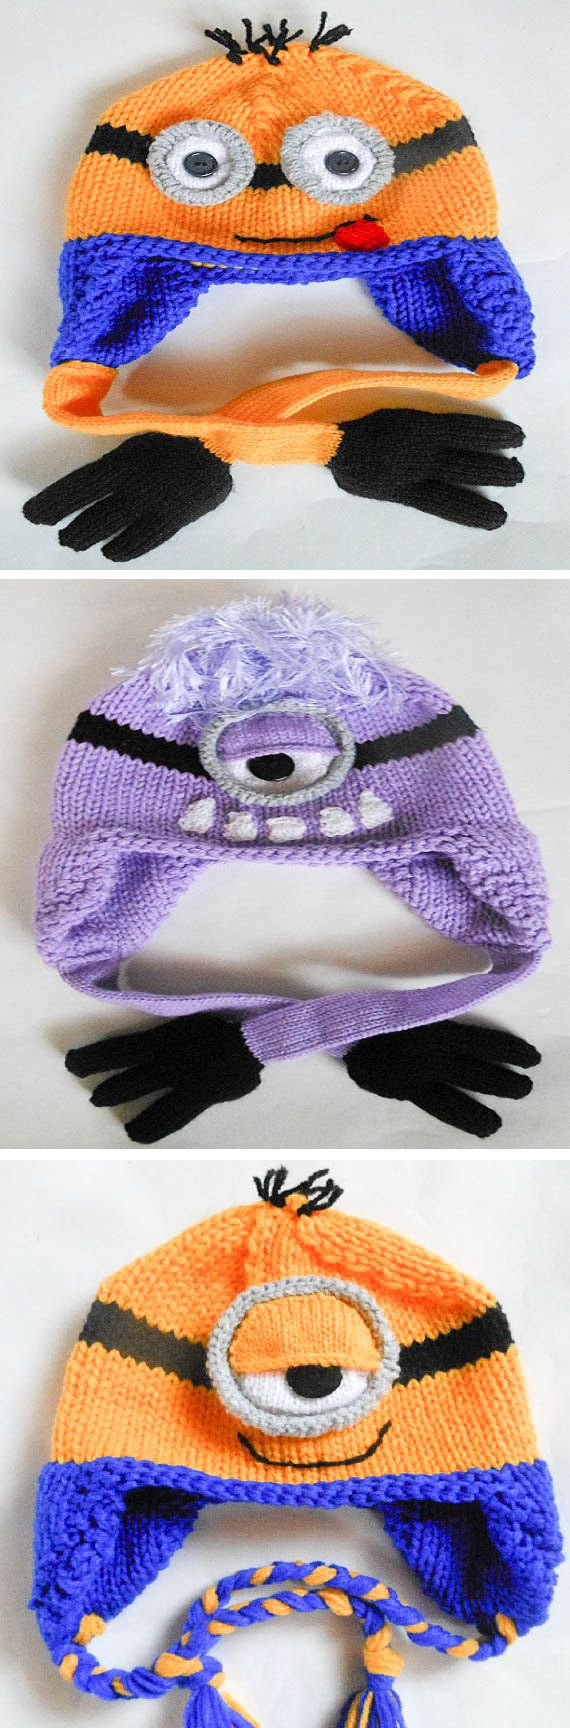 1074 best knit hats images on pinterest knitting hats free knitting patterns for minion earflap hats this pattern comes with instructions for a variety of bankloansurffo Gallery